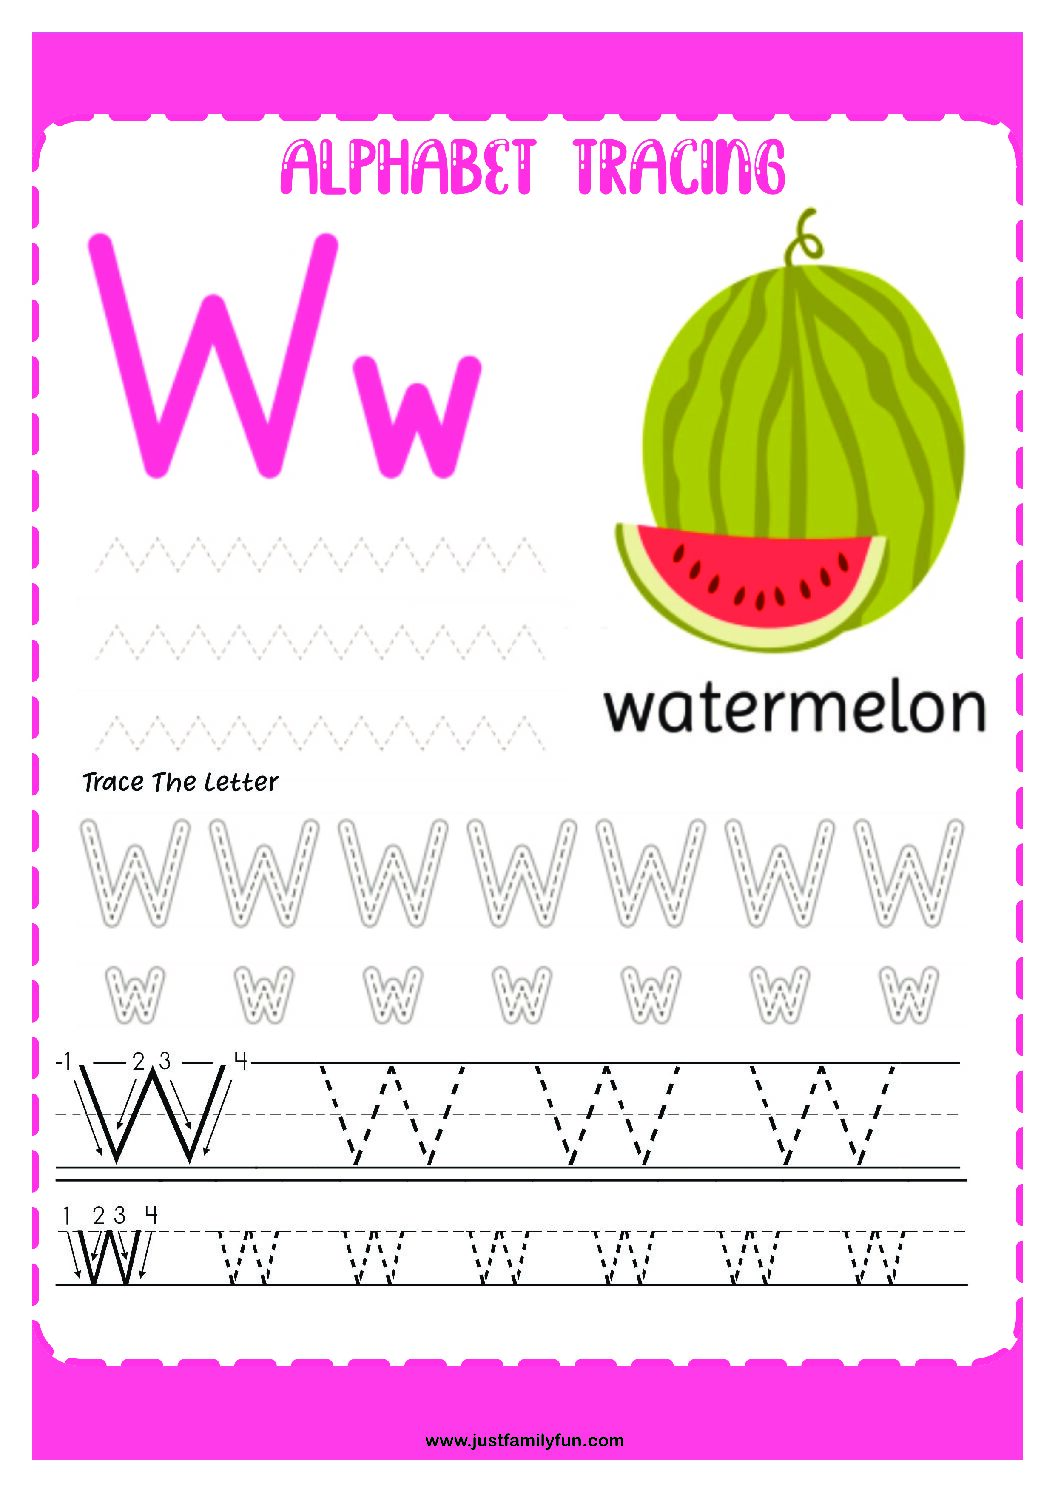 Alphabets_23-pdf Free Printable Trace The Alphabet Worksheets for Kids.